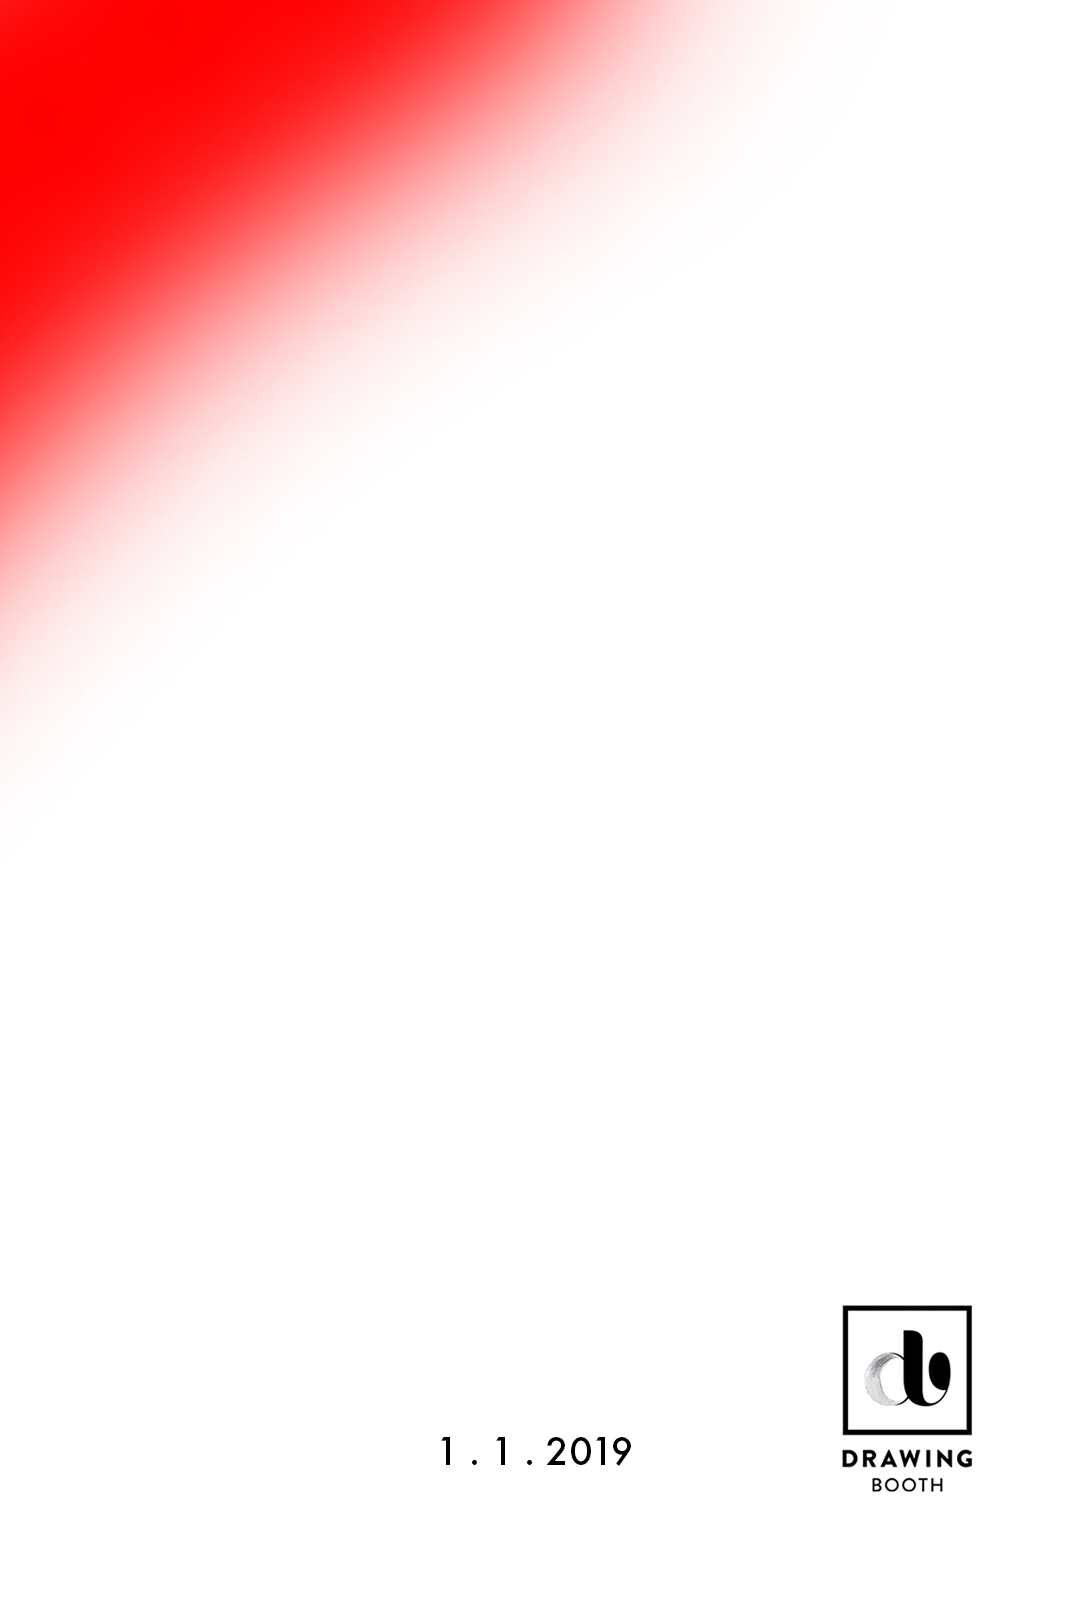 Hyper Minimal Fade (Available for use)